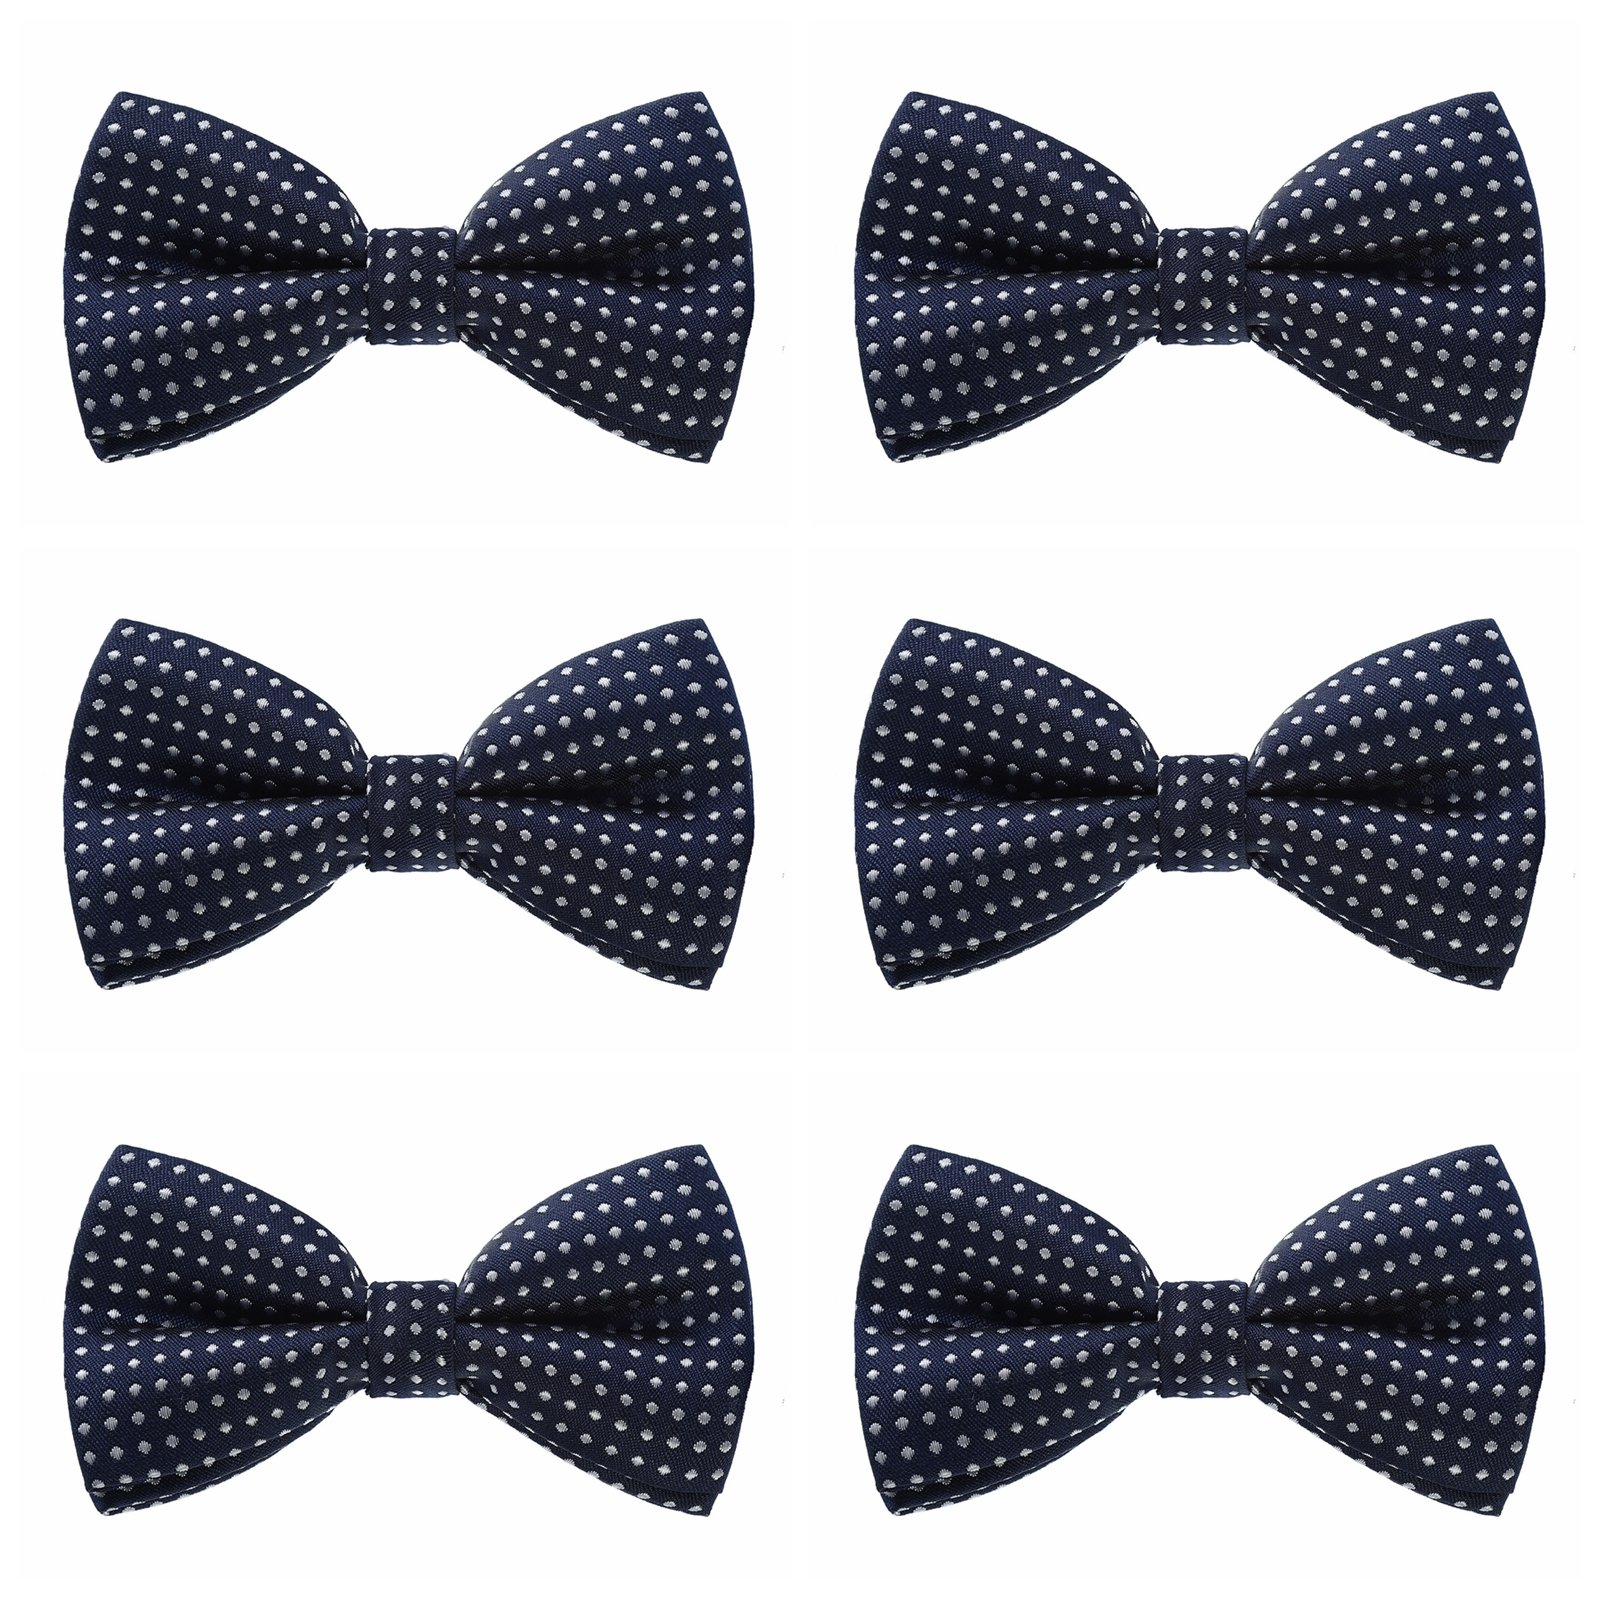 Boys Polka Dots Bow Ties - 6 Pack of Double Layer Adjustable Pre Tied Bowties (Navy Blue)